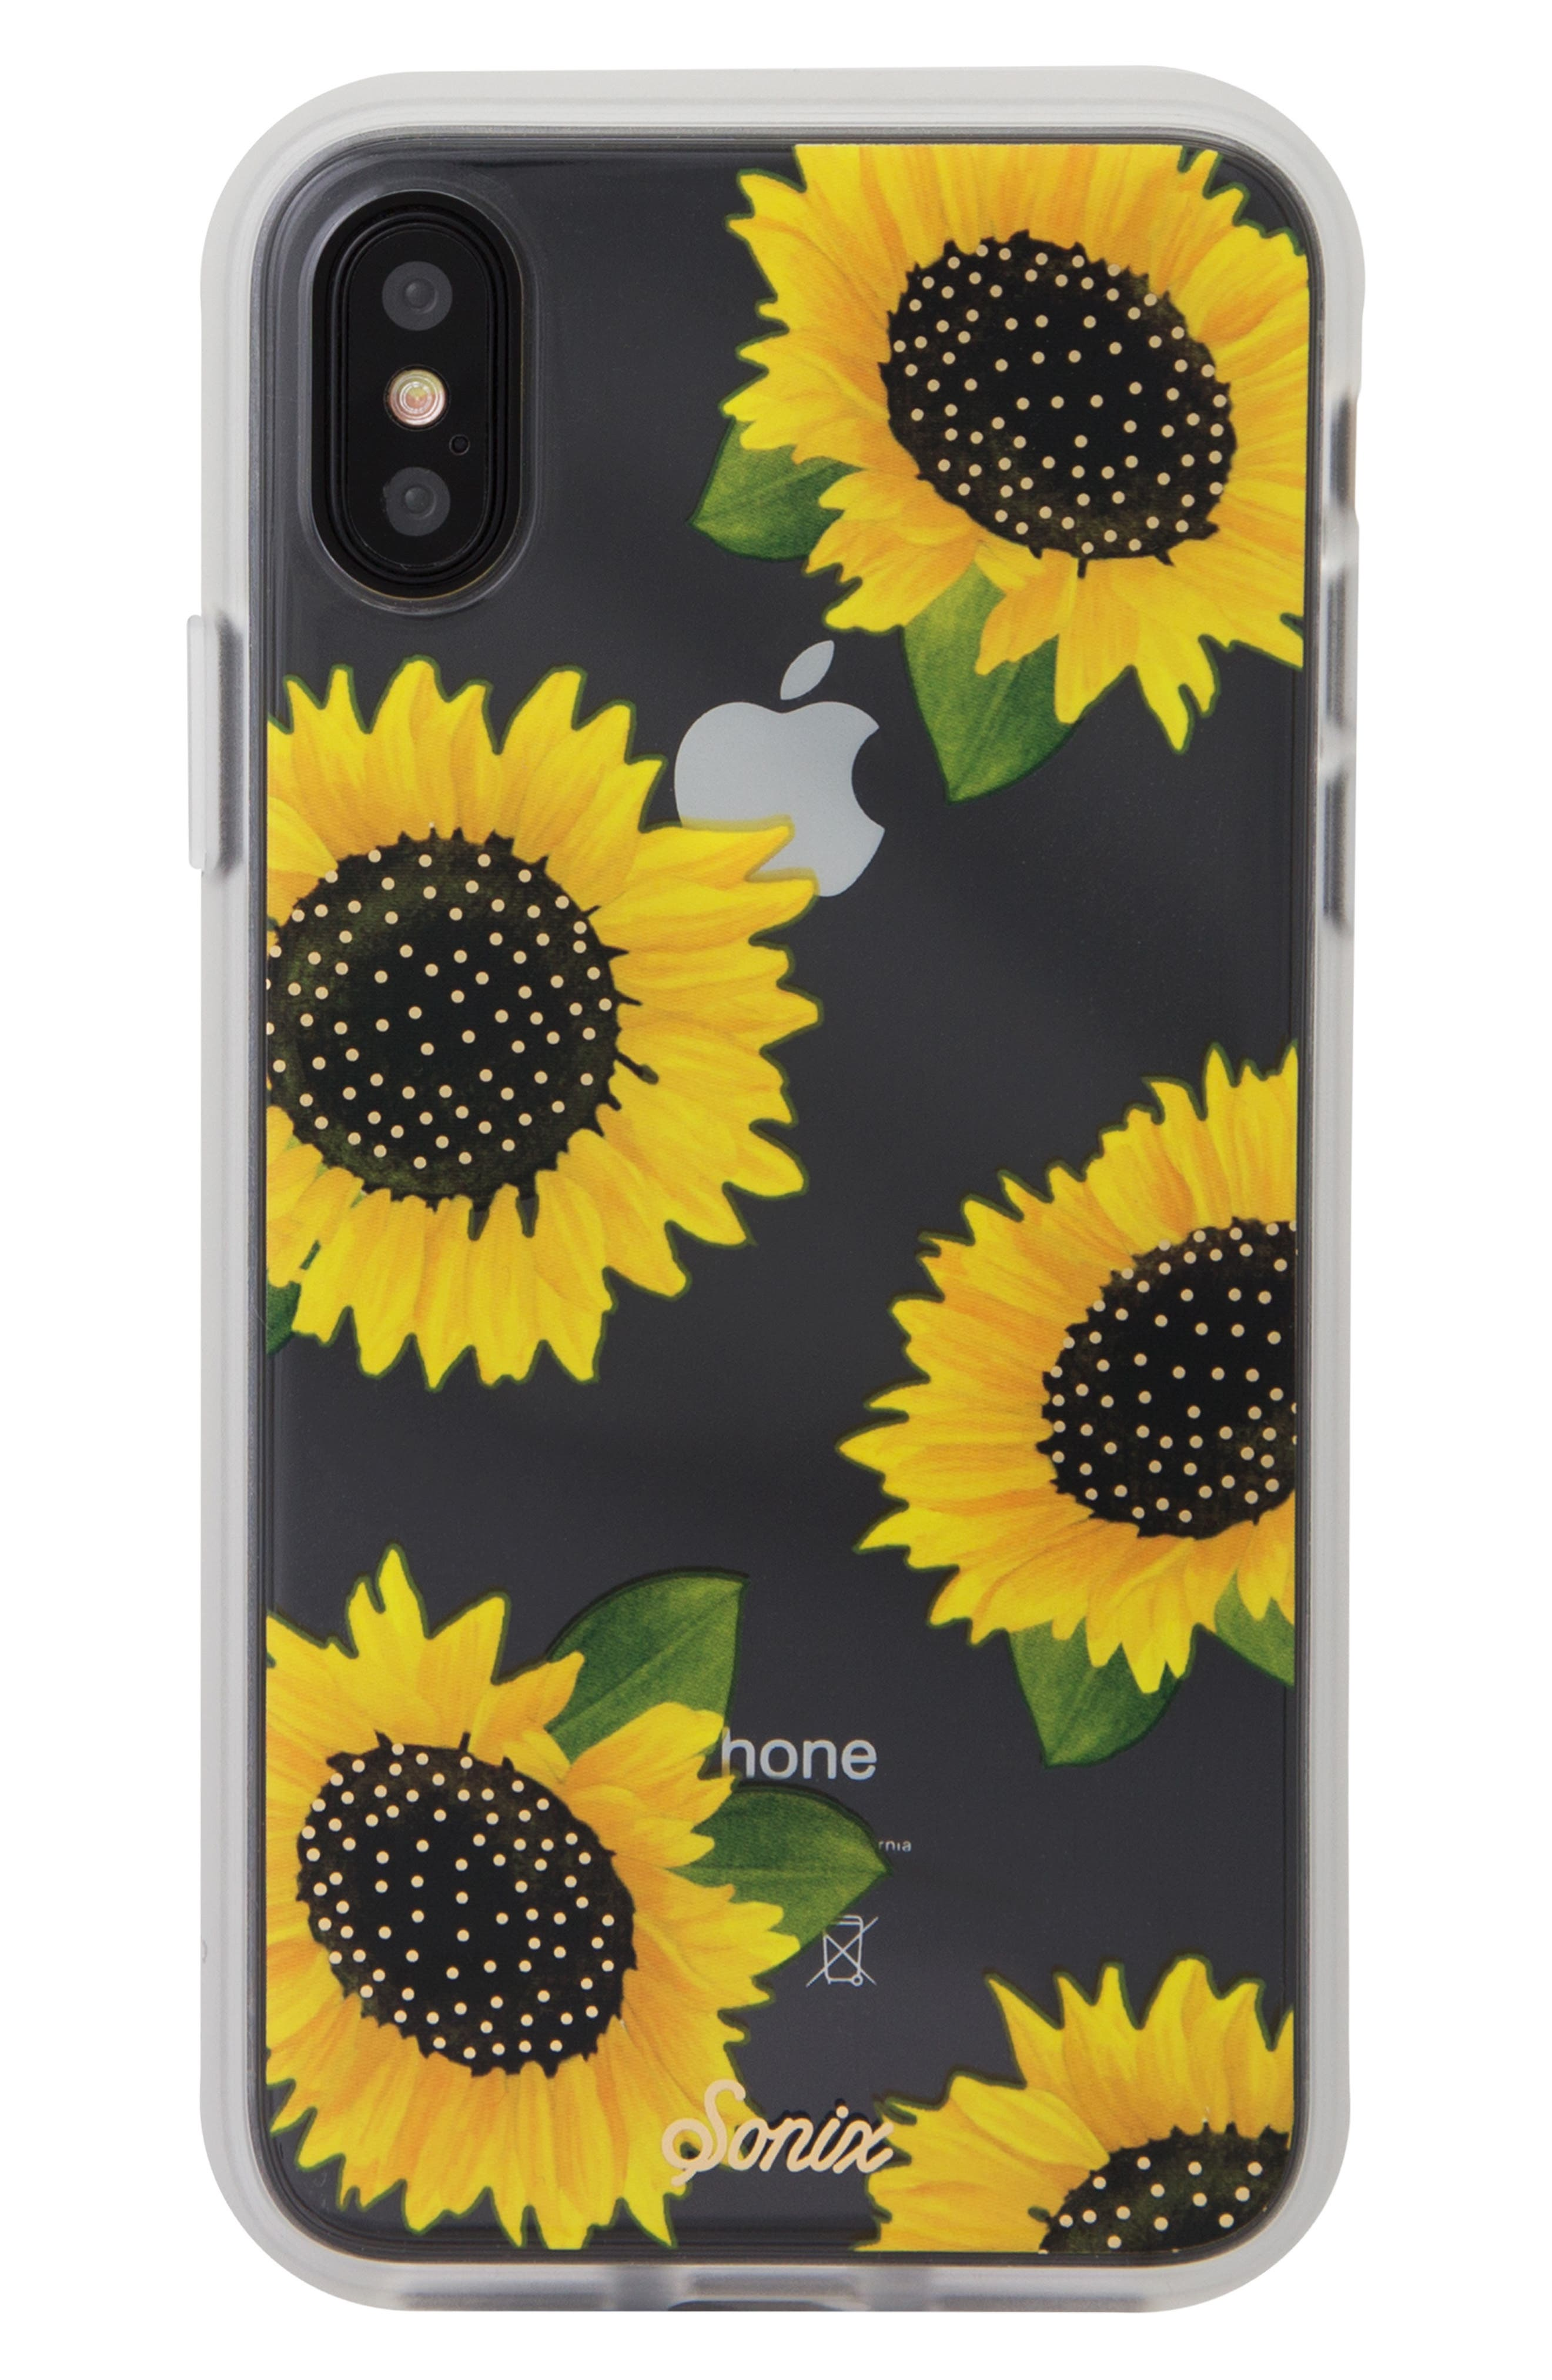 Sunflower iPhone X/Xs, XR & X Max Case,                         Main,                         color, YELLOW